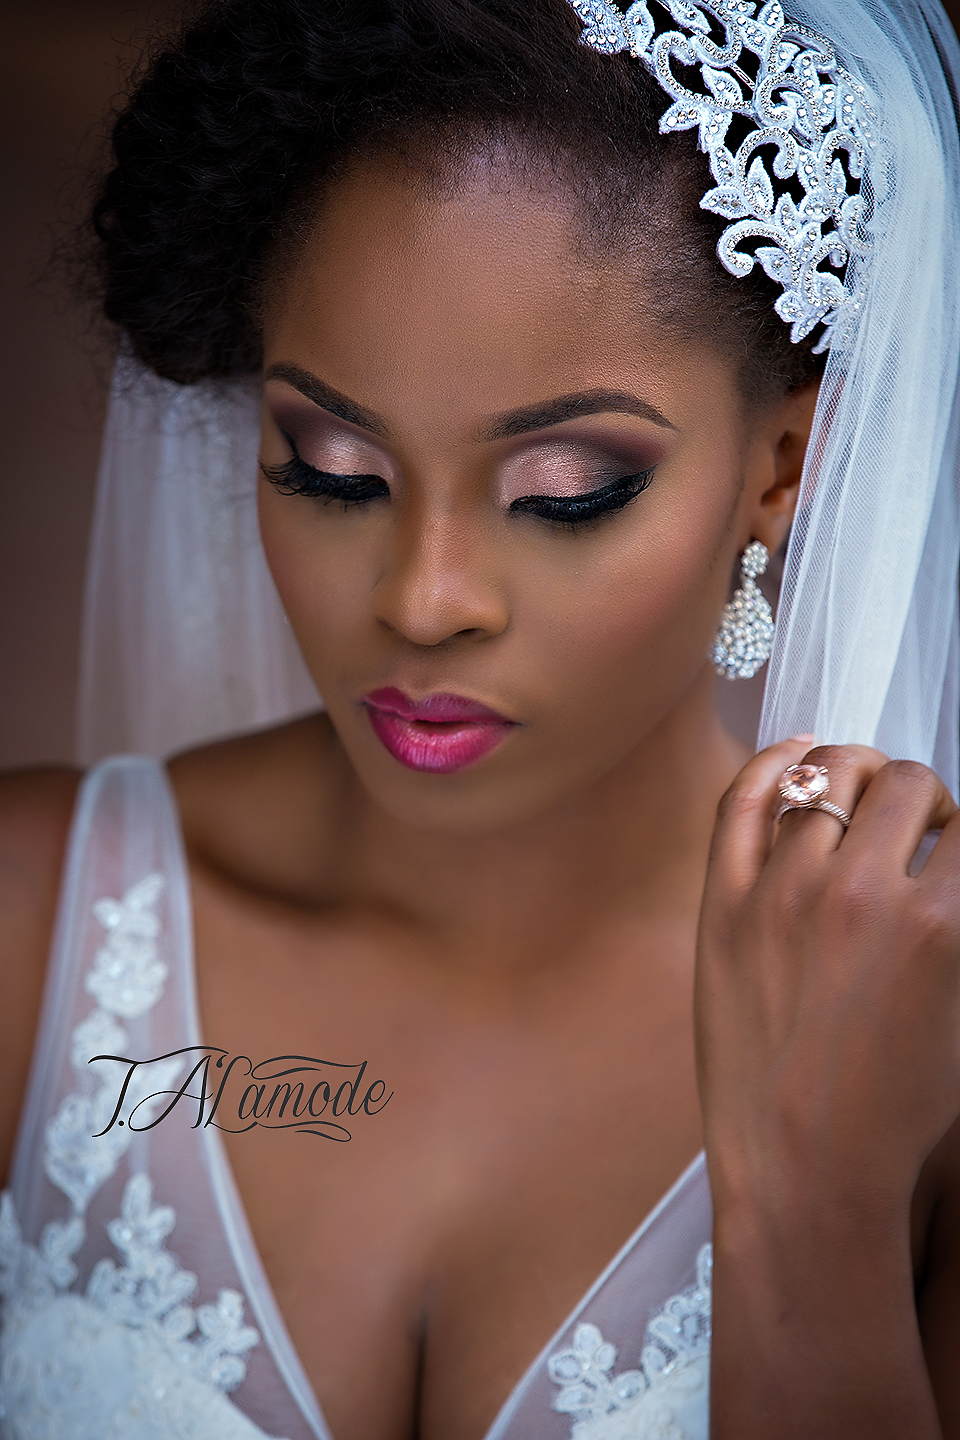 Brilliant Striking Natural Hair Looks For The 2015 Bride T Alamode Hairstyles For Women Draintrainus